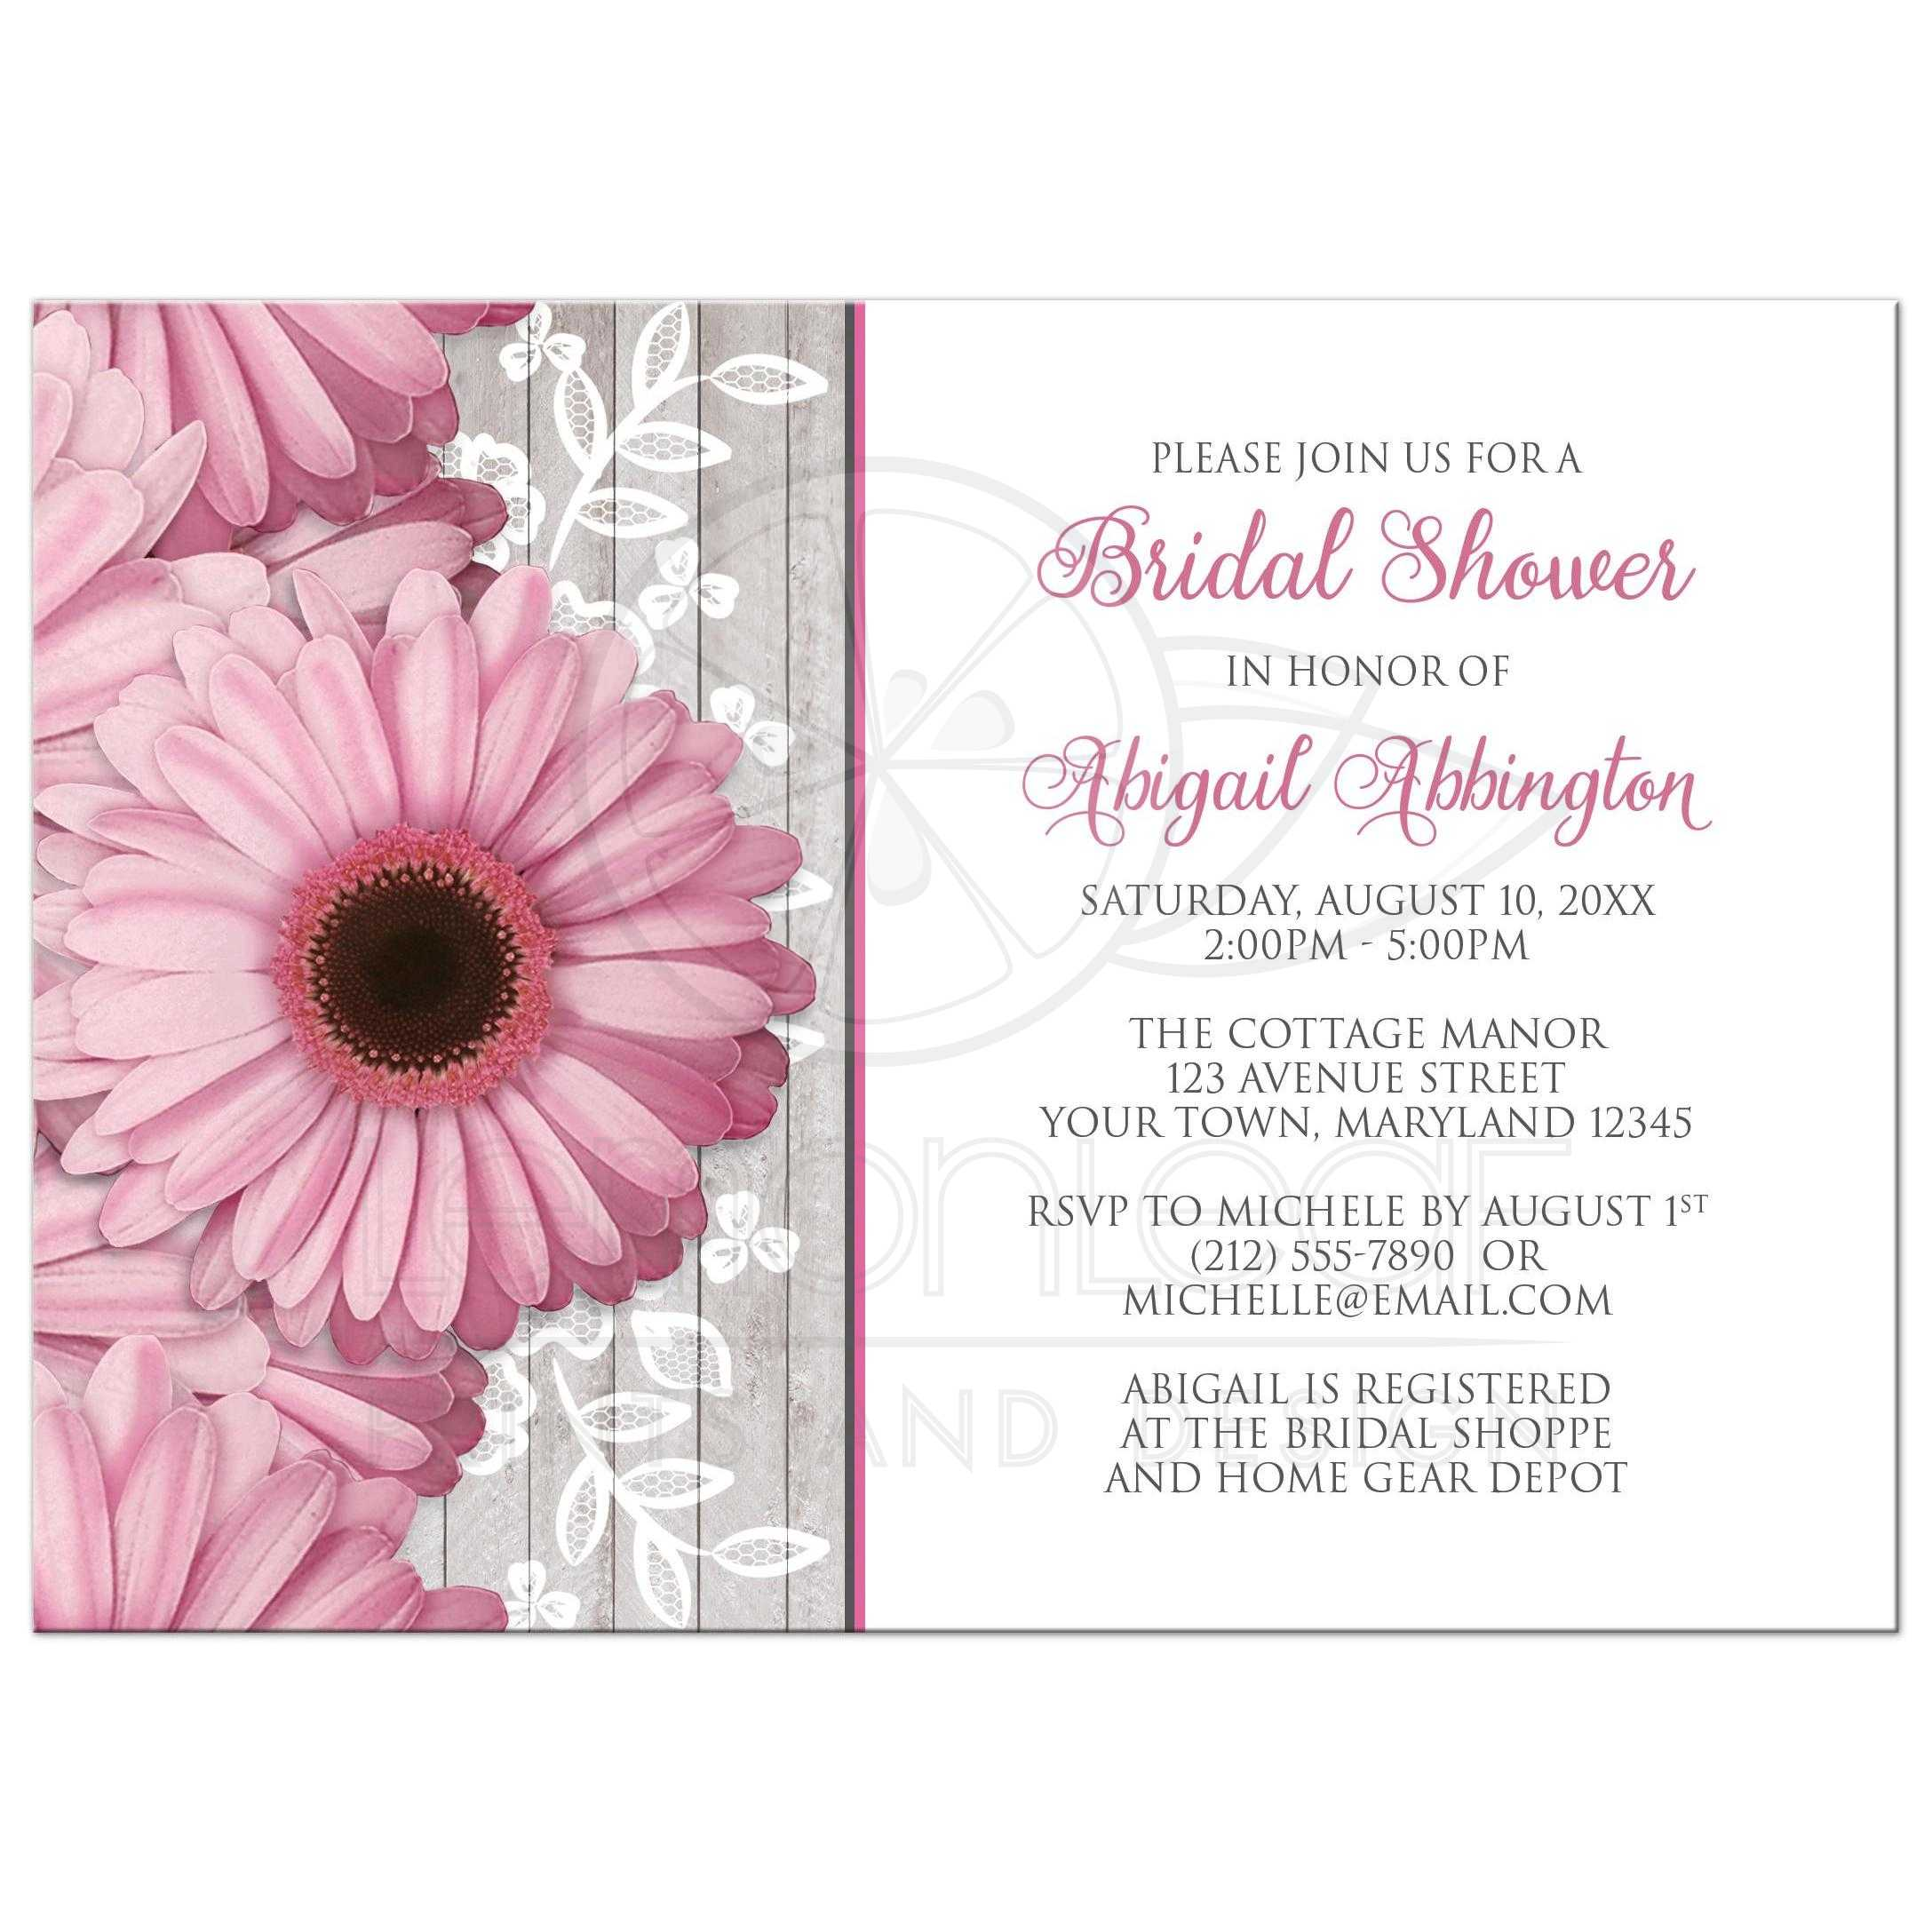 Bridal Shower Invitations - Rustic Pink Daisy Wood White